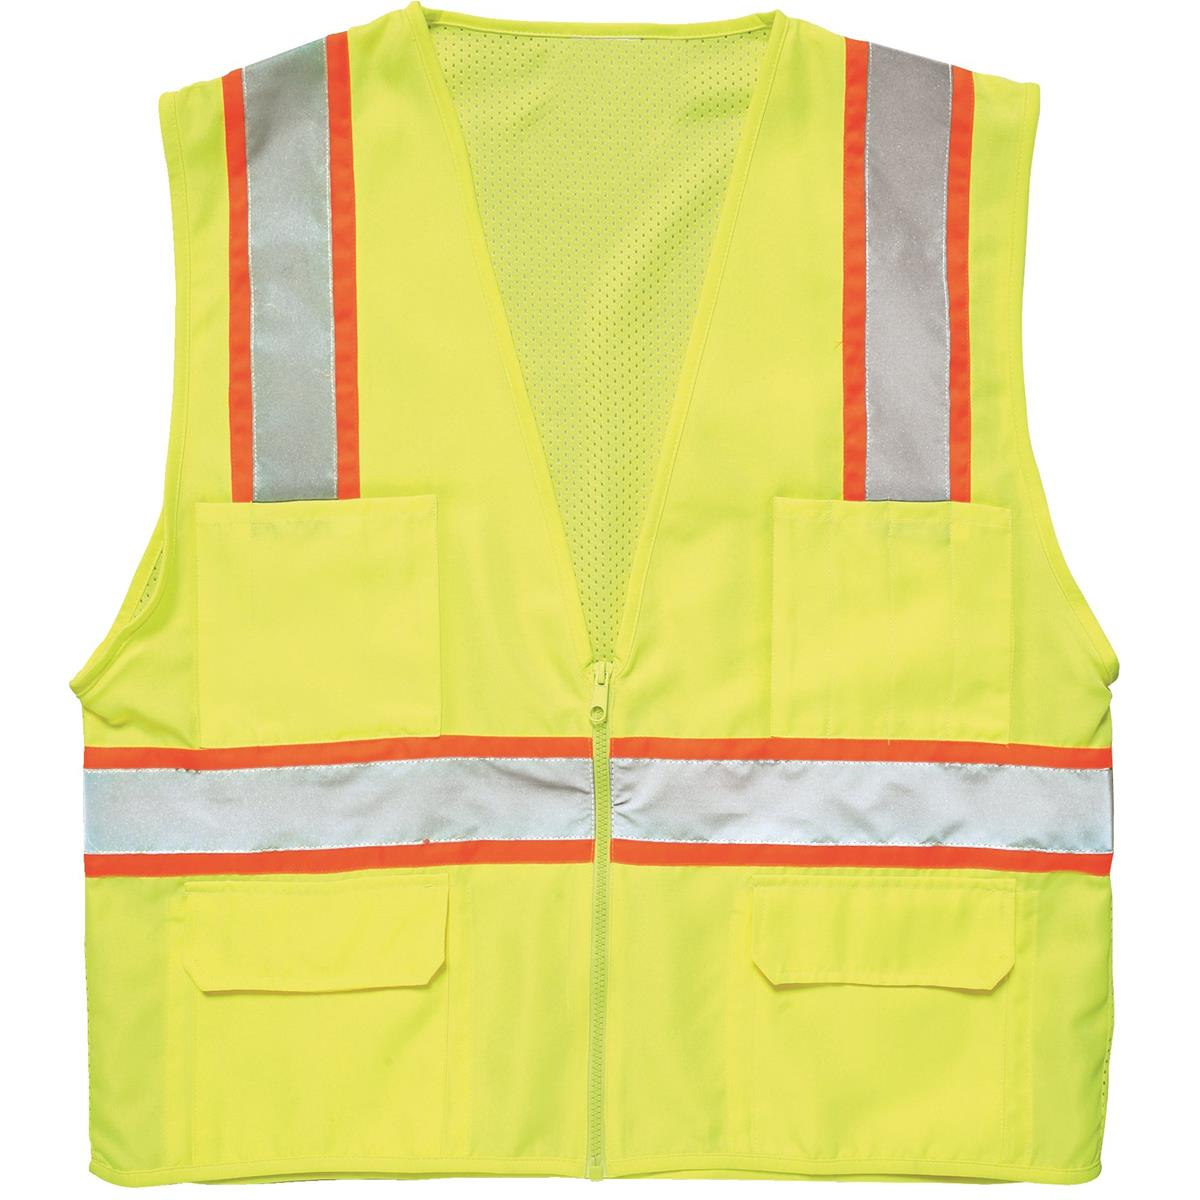 ML Kishigo ANSI Class 2 Ultra-Cool™ Hi-Vis Surveyor's Safety Vest